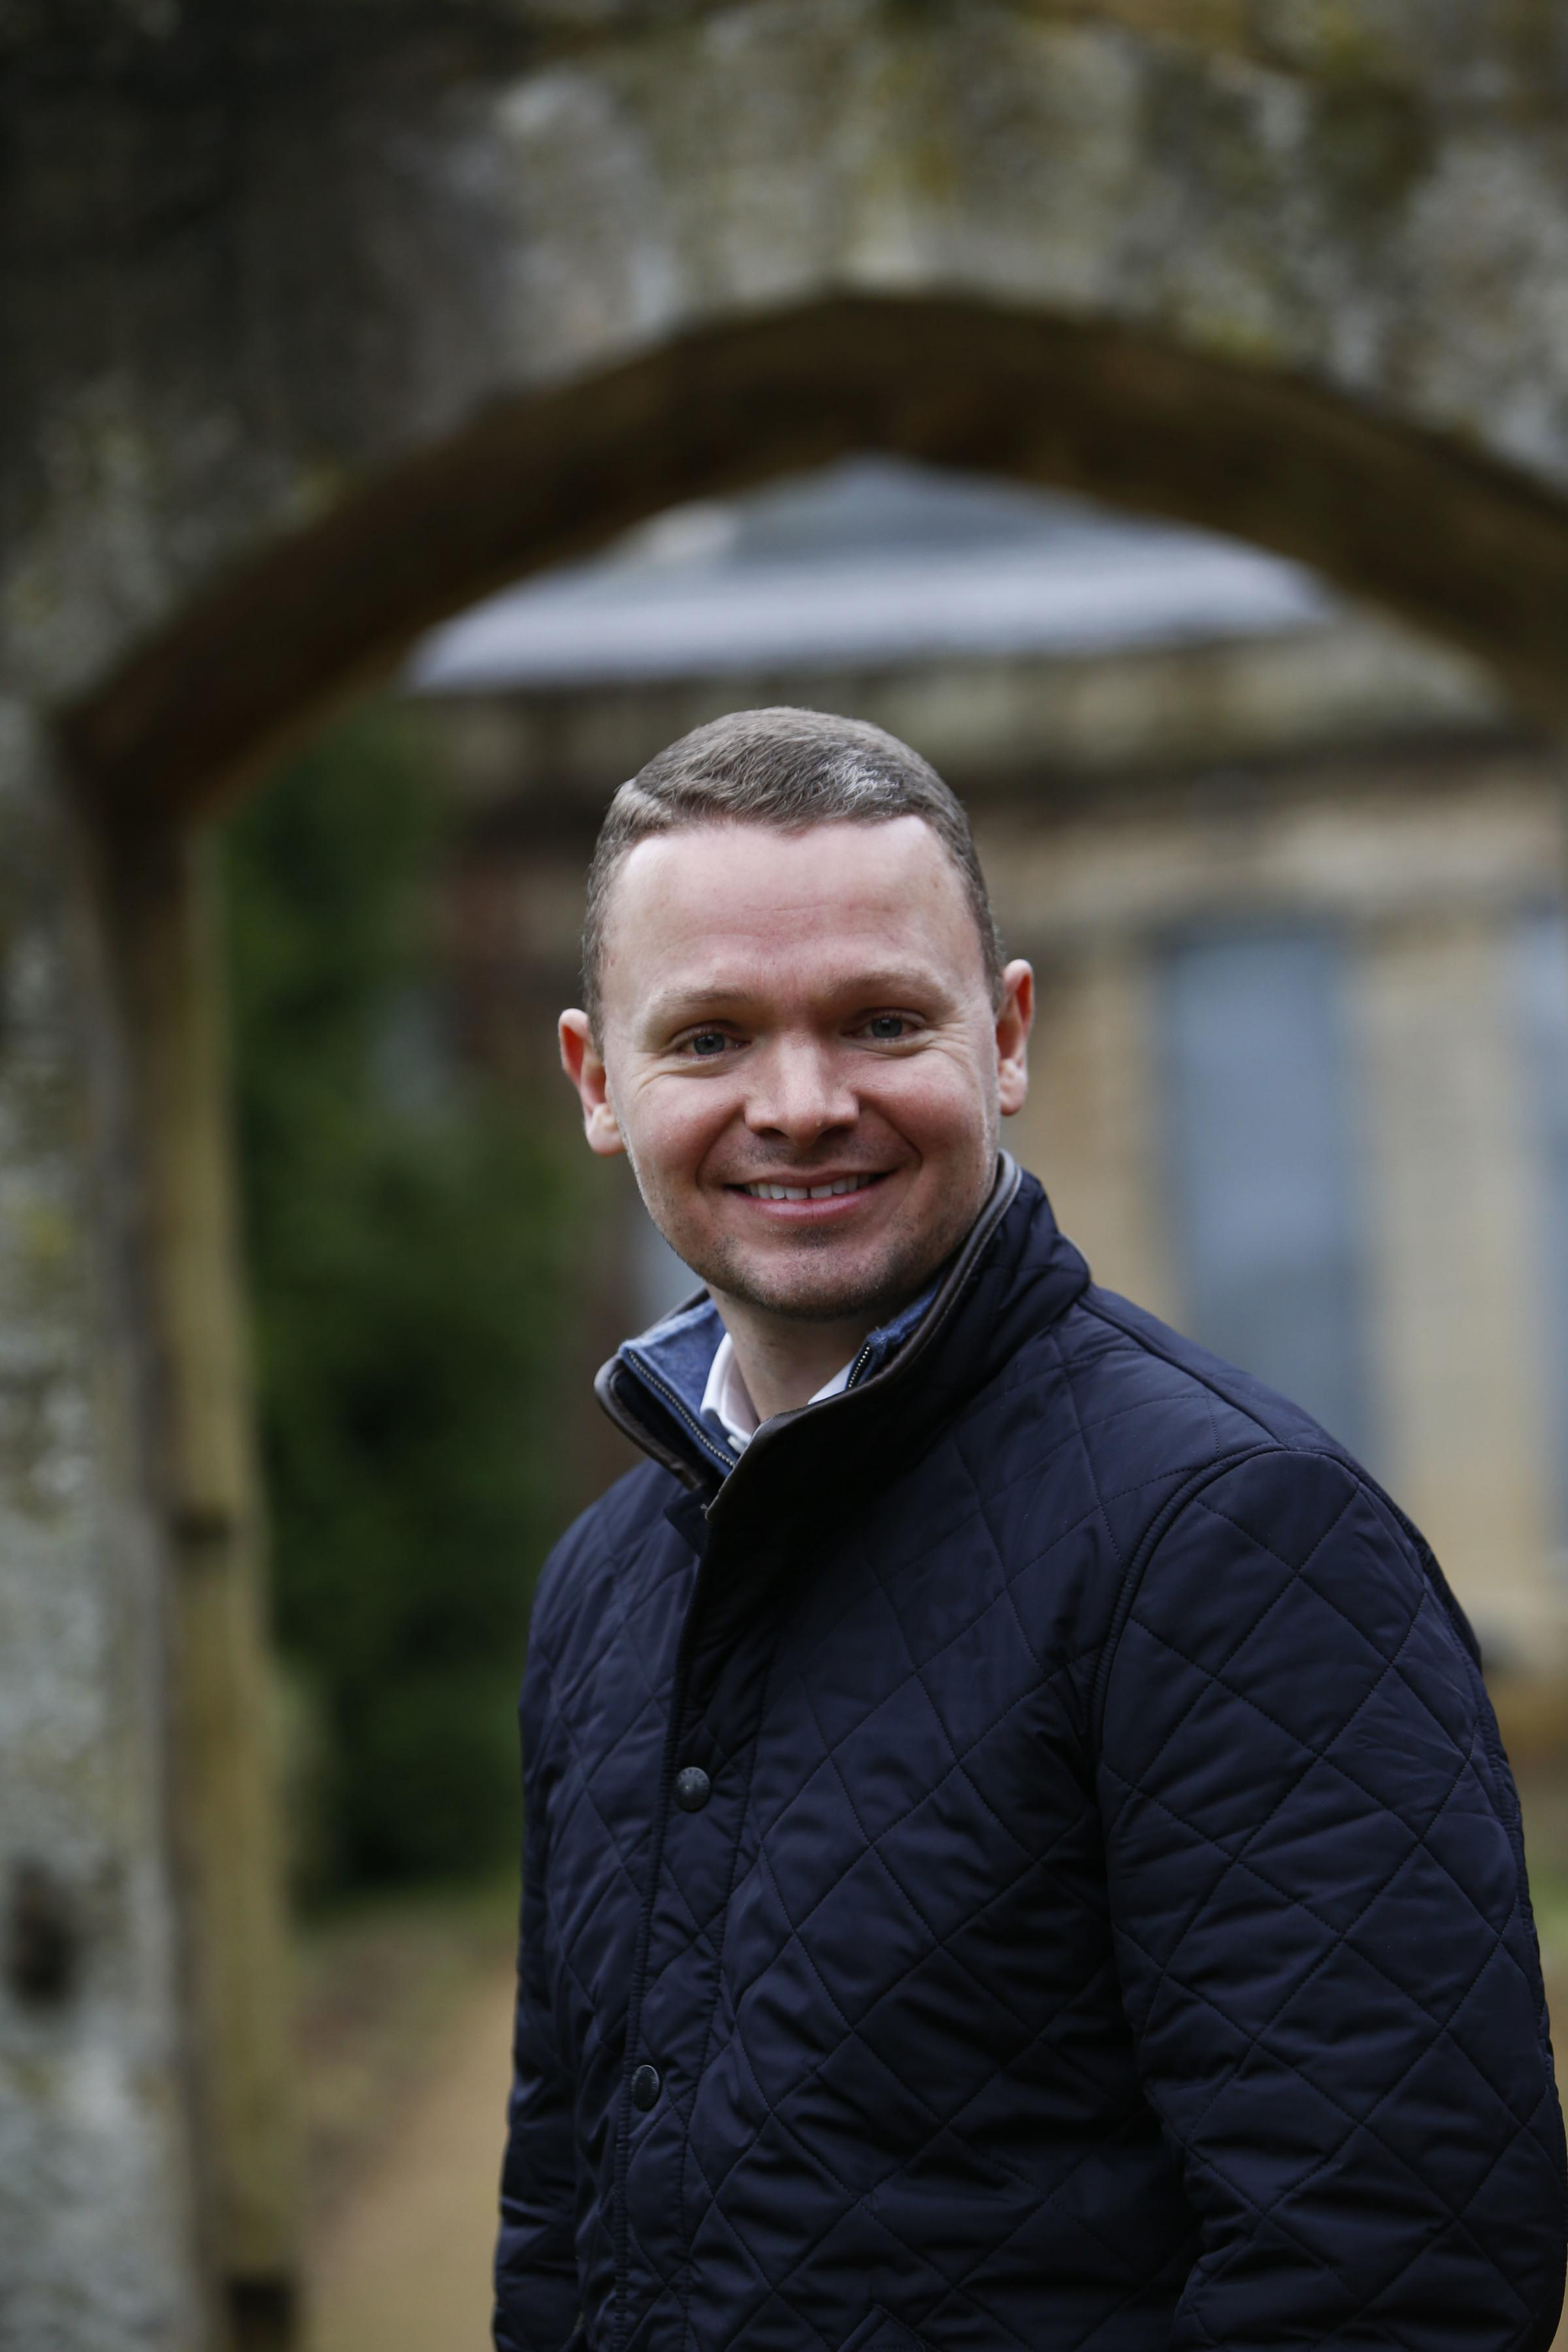 Daniel Ede, of Ede Holdings, the company which wants to transform Old Abbey House into a boutique hotel. Picture: Ed Nix